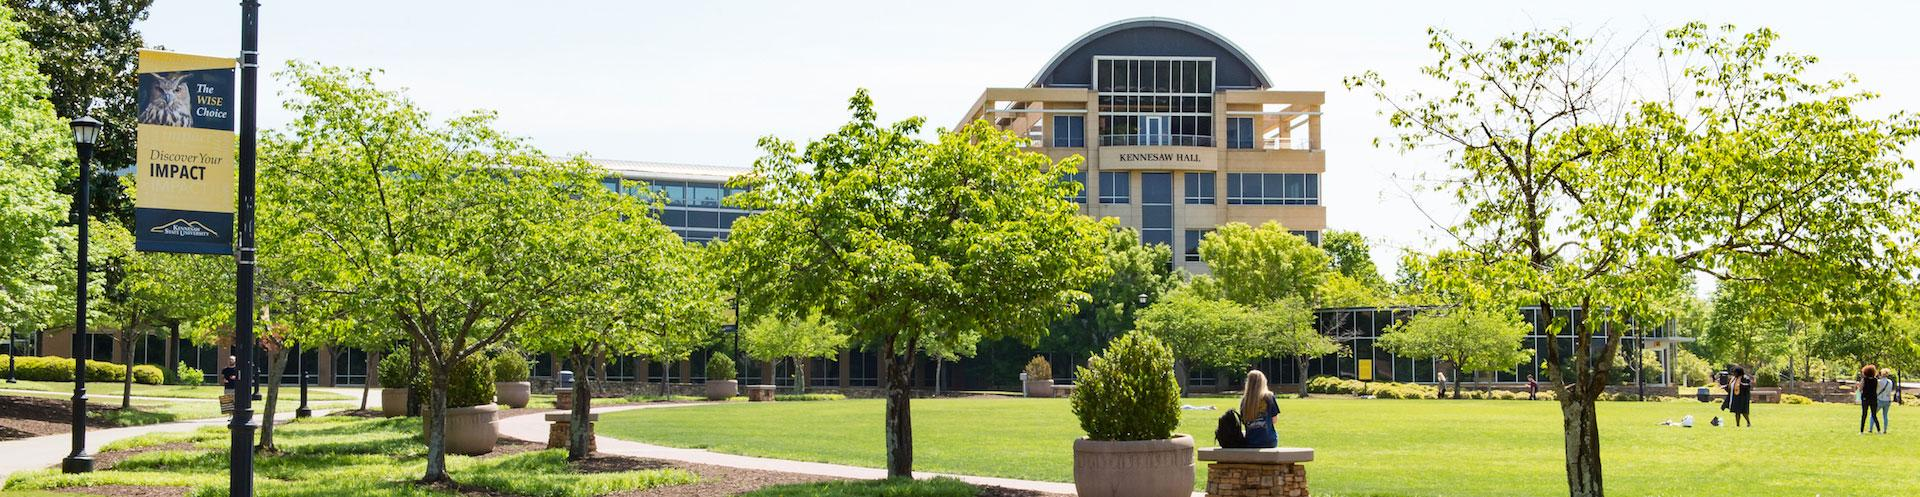 KSU's Campus Green during the beautiful summer months.